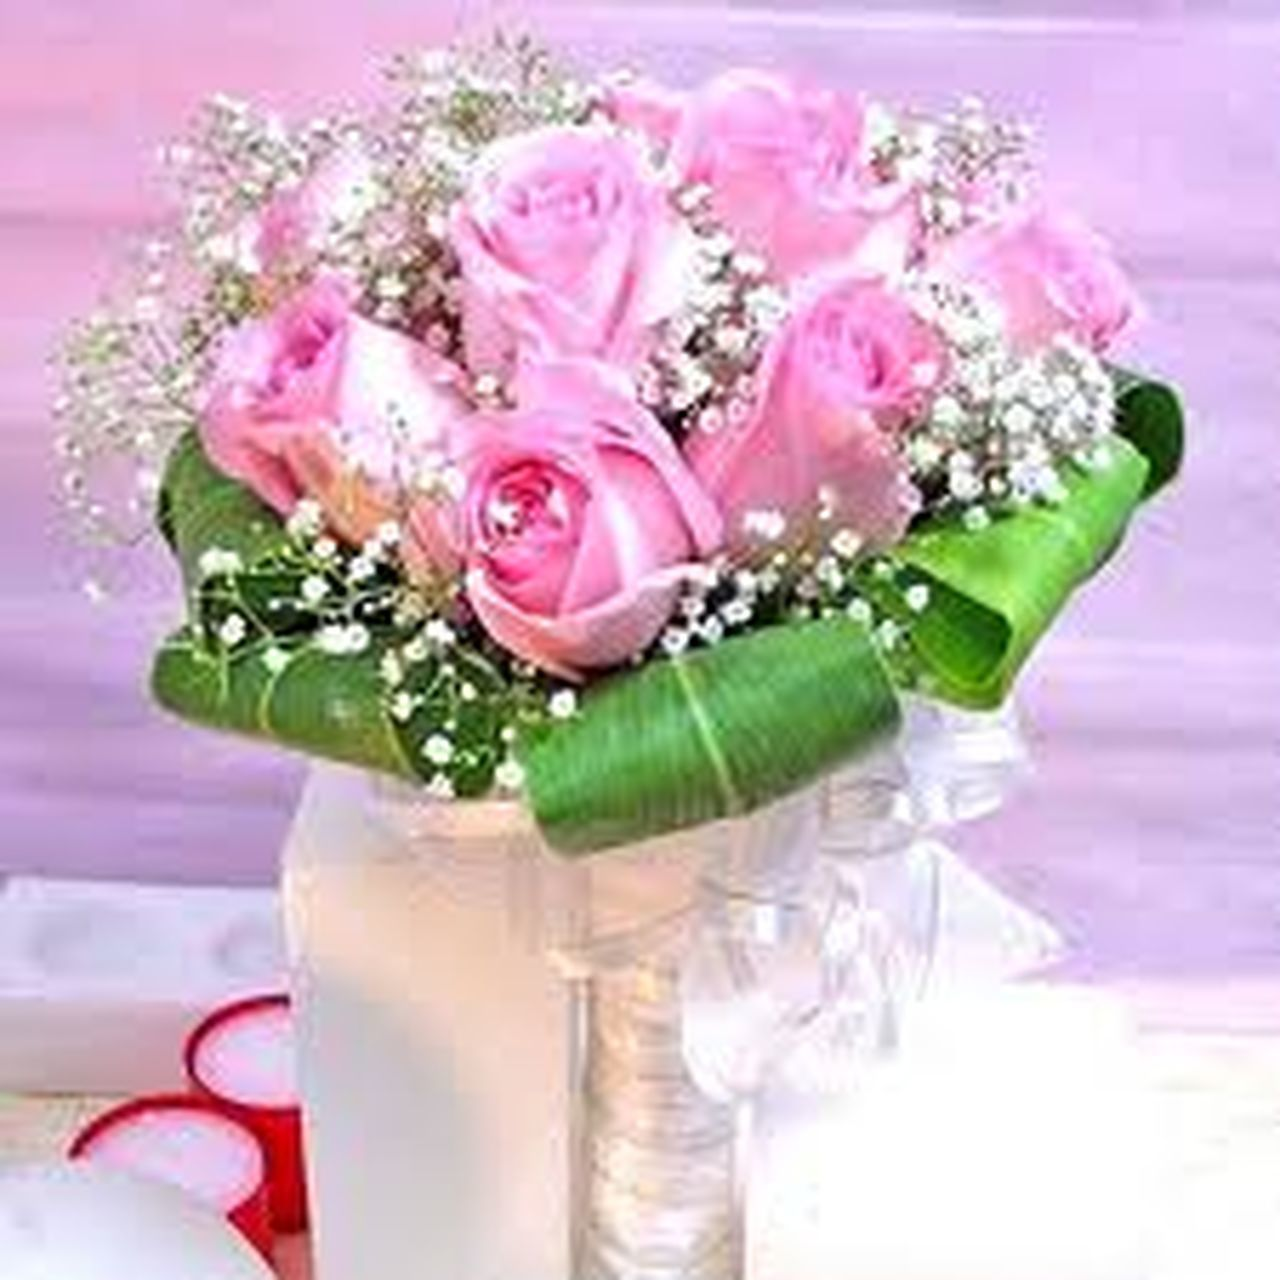 pink color, flower, celebration, rose - flower, no people, wedding, bouquet, close-up, luxury, freshness, indoors, beauty in nature, day